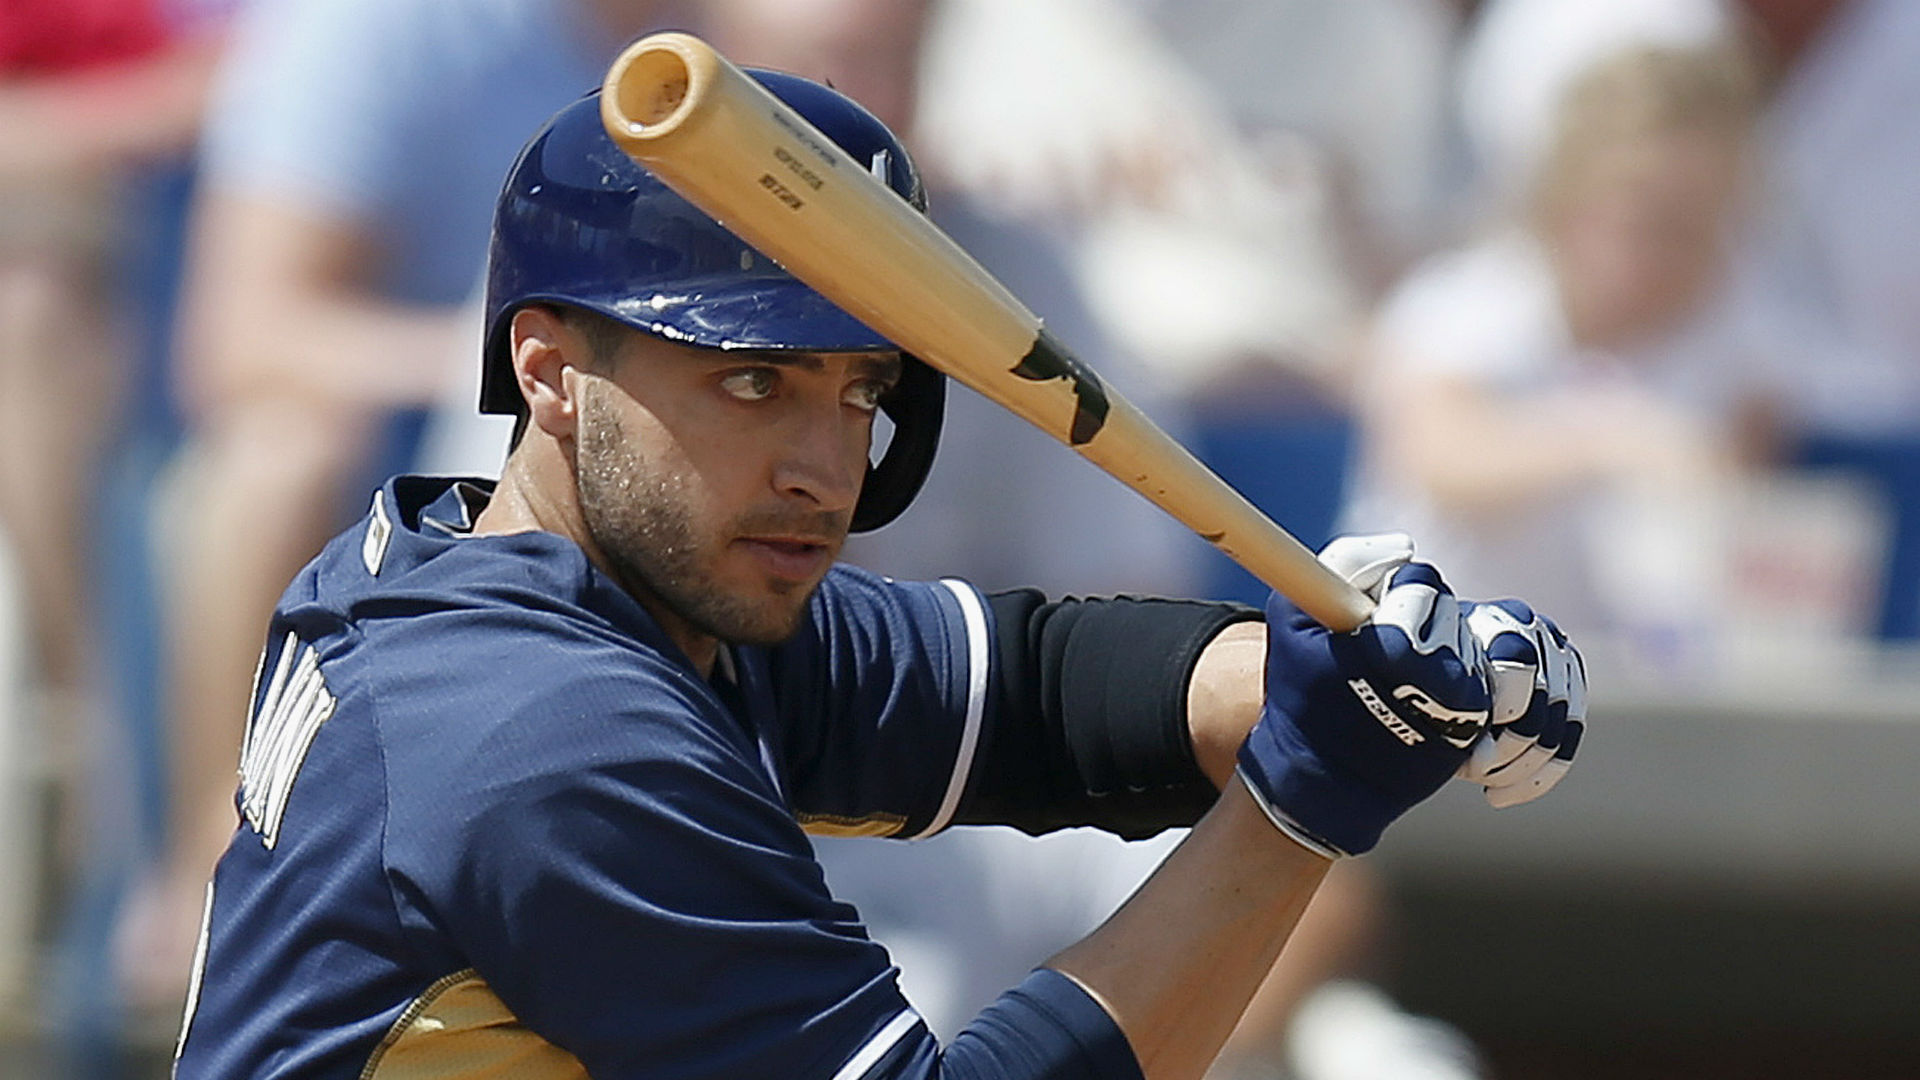 Ryan Braun's thumb injury not improving, surgery possible